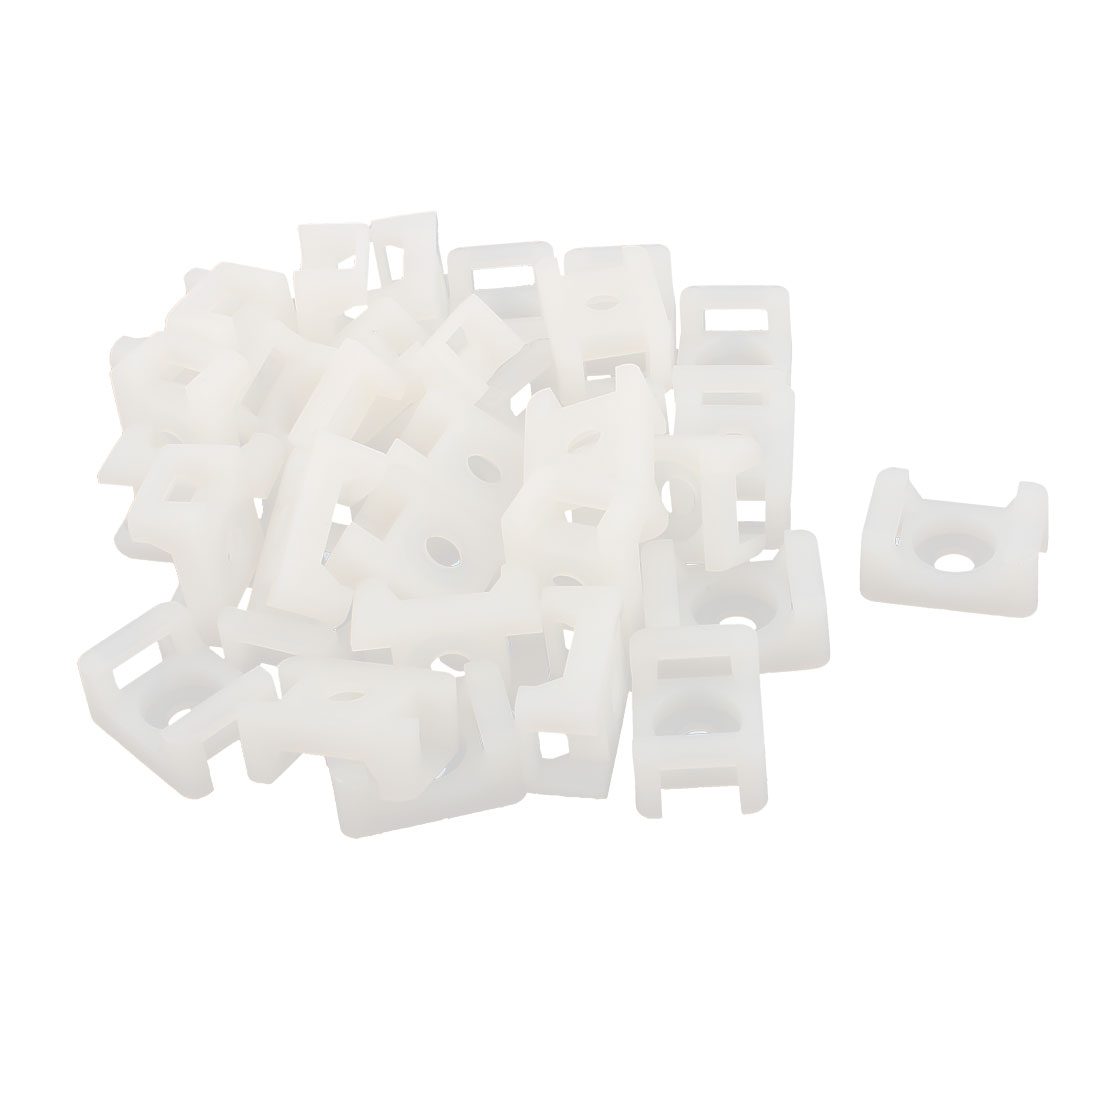 32 Pcs STM-2 Nylon Saddle Type Cable Tie Mount Holder Wire Organizers White